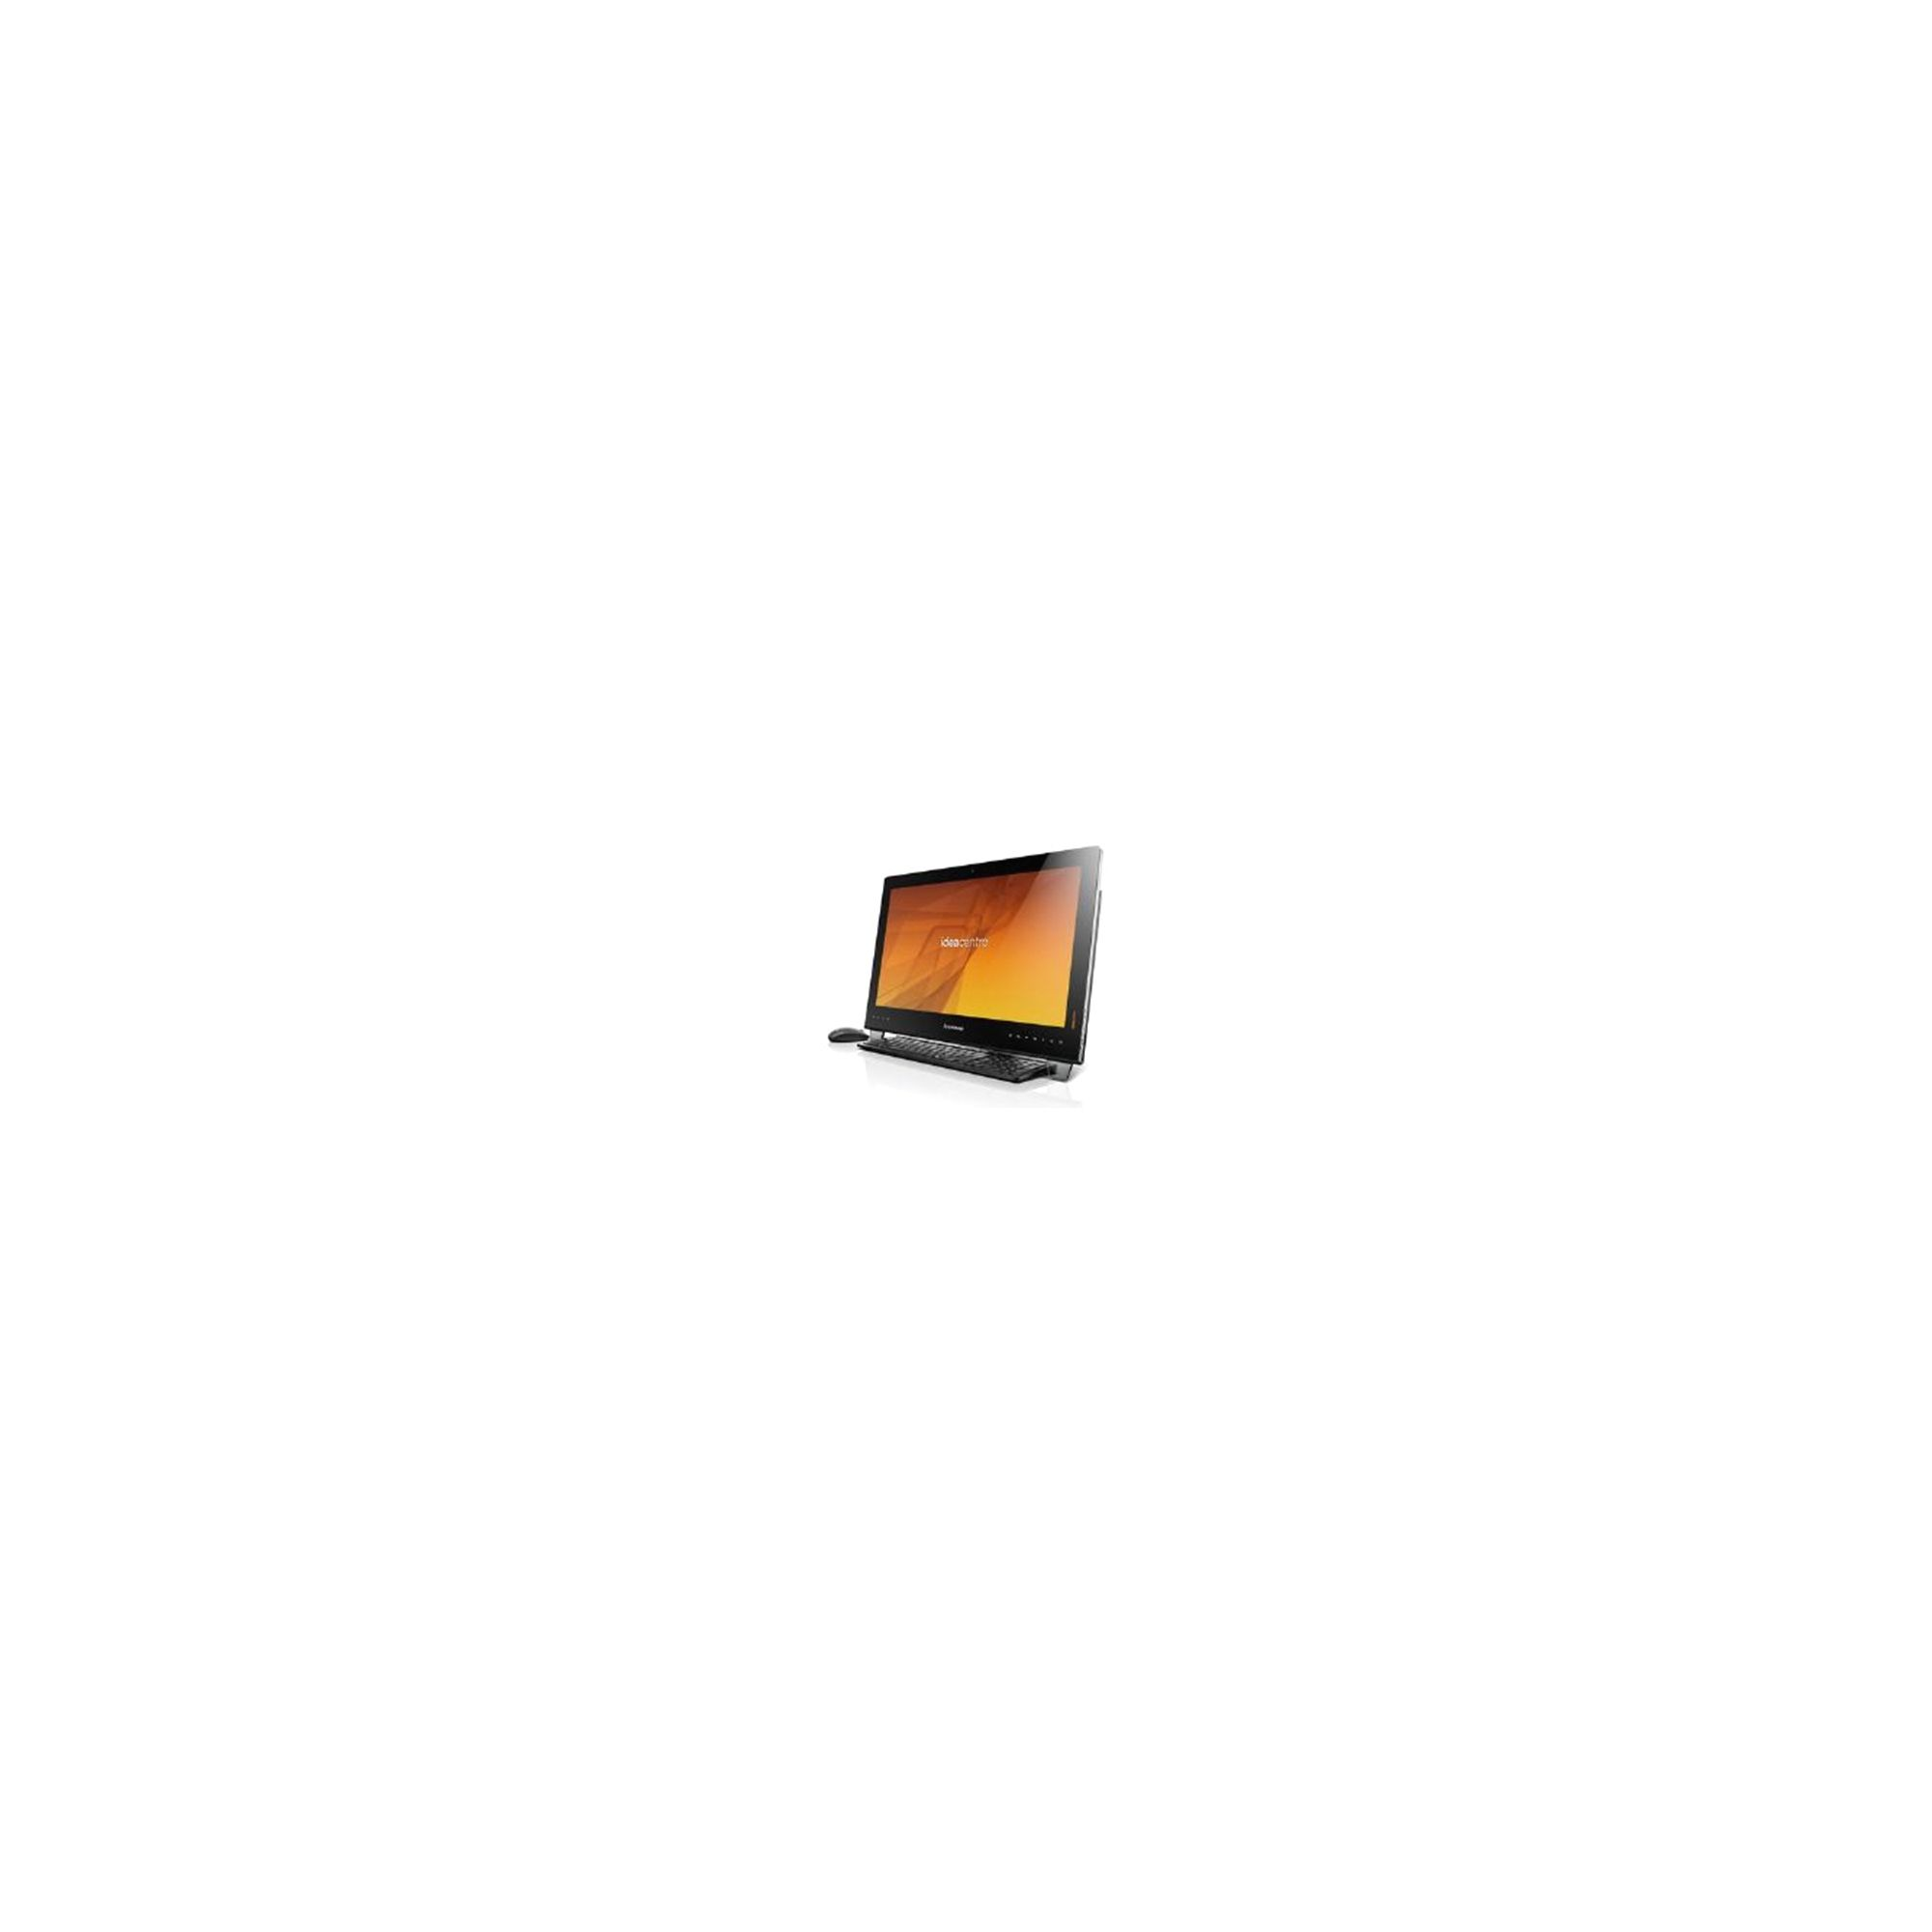 Lenovo IdeaCentre B540 - 23-inch Multi-touch at Tescos Direct